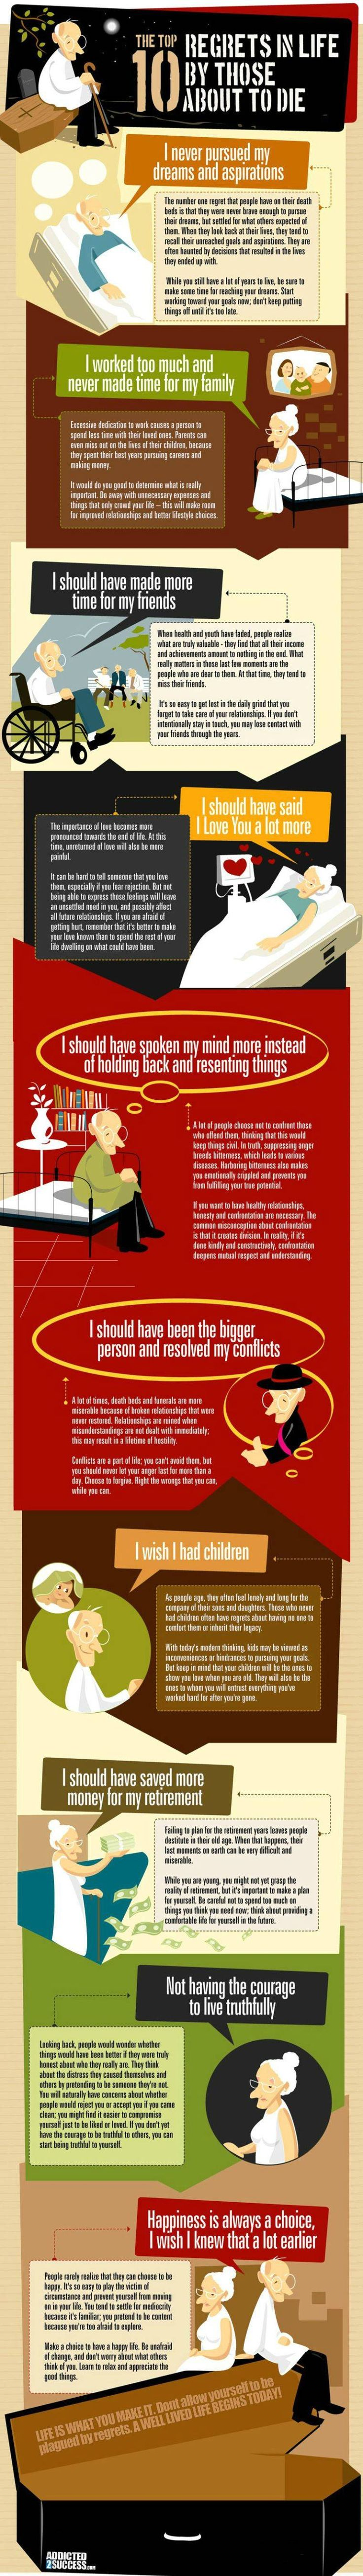 Top 10 Regrets Of Those Dying Infographic